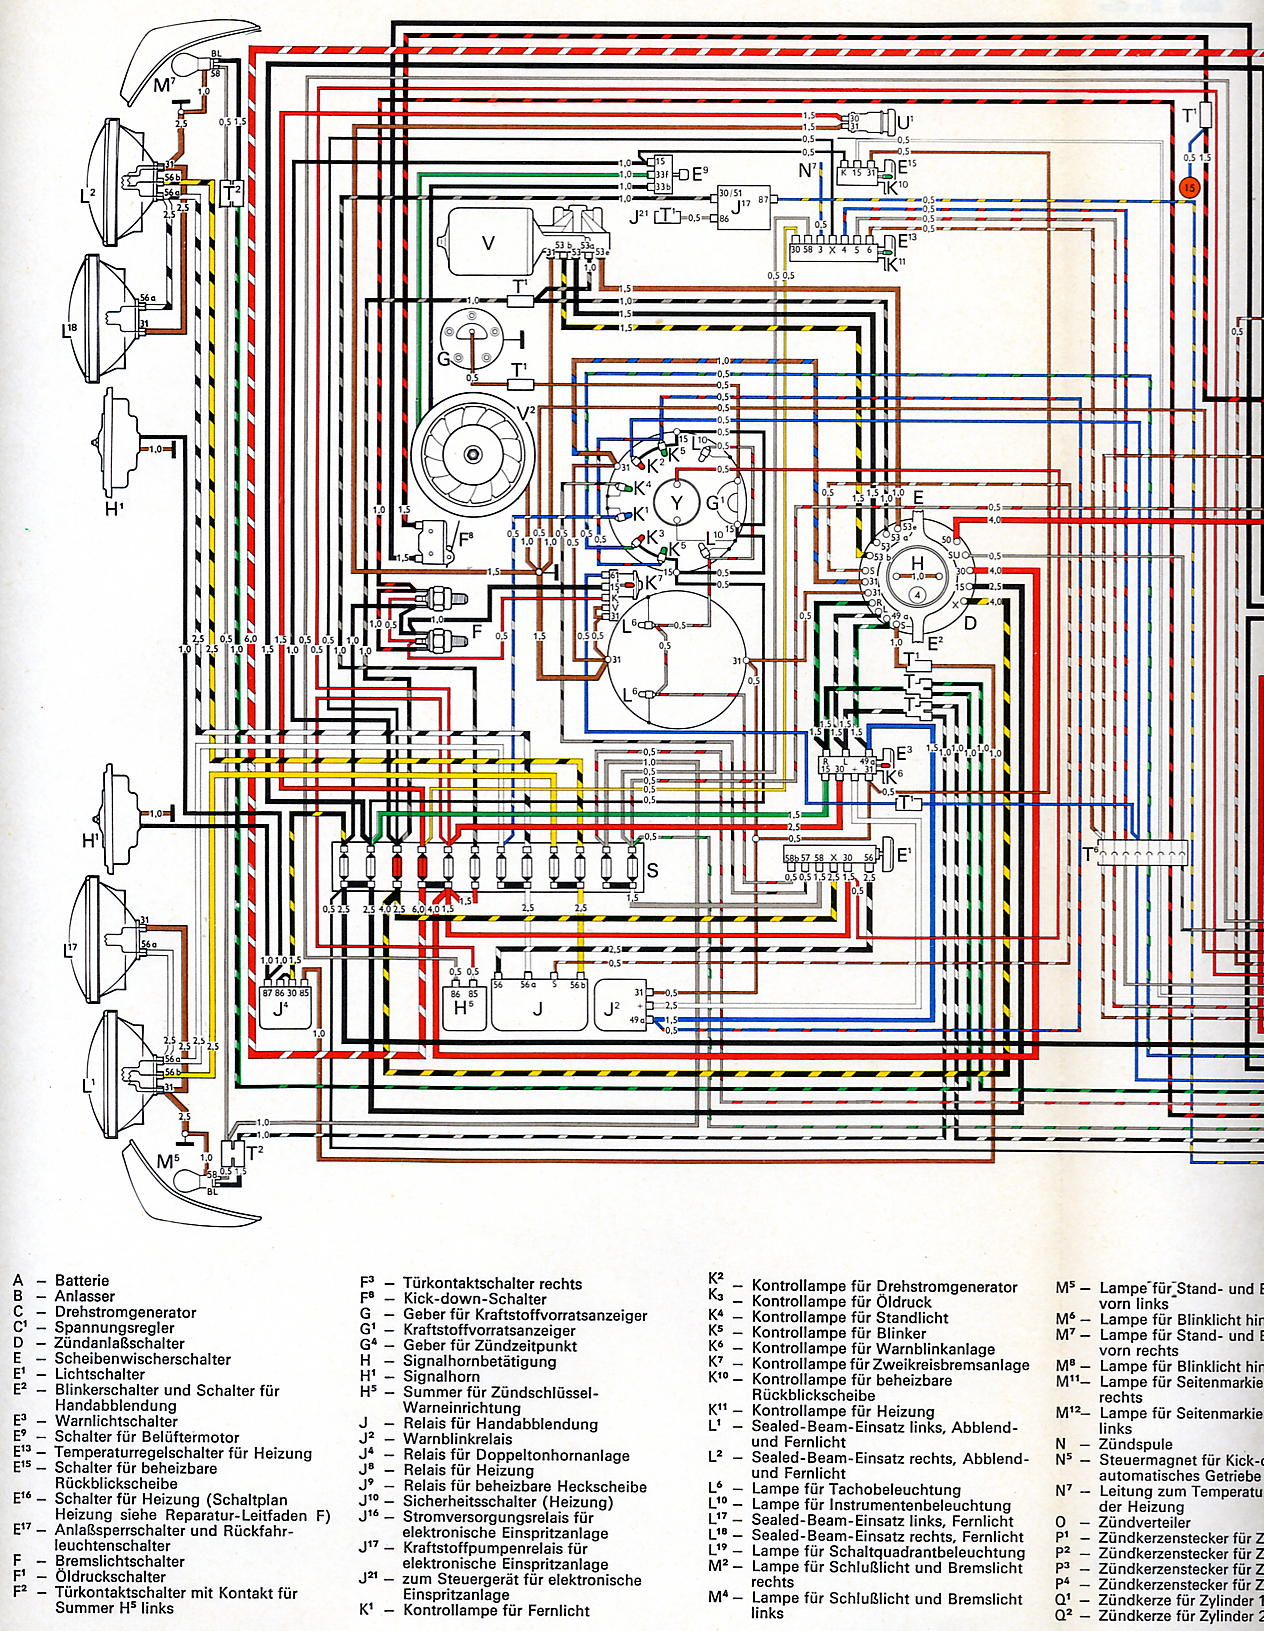 saab wiring diagram 9 3 saab image wiring diagram saab 9 3 wiring diagram saab wiring diagrams on saab wiring diagram 9 3